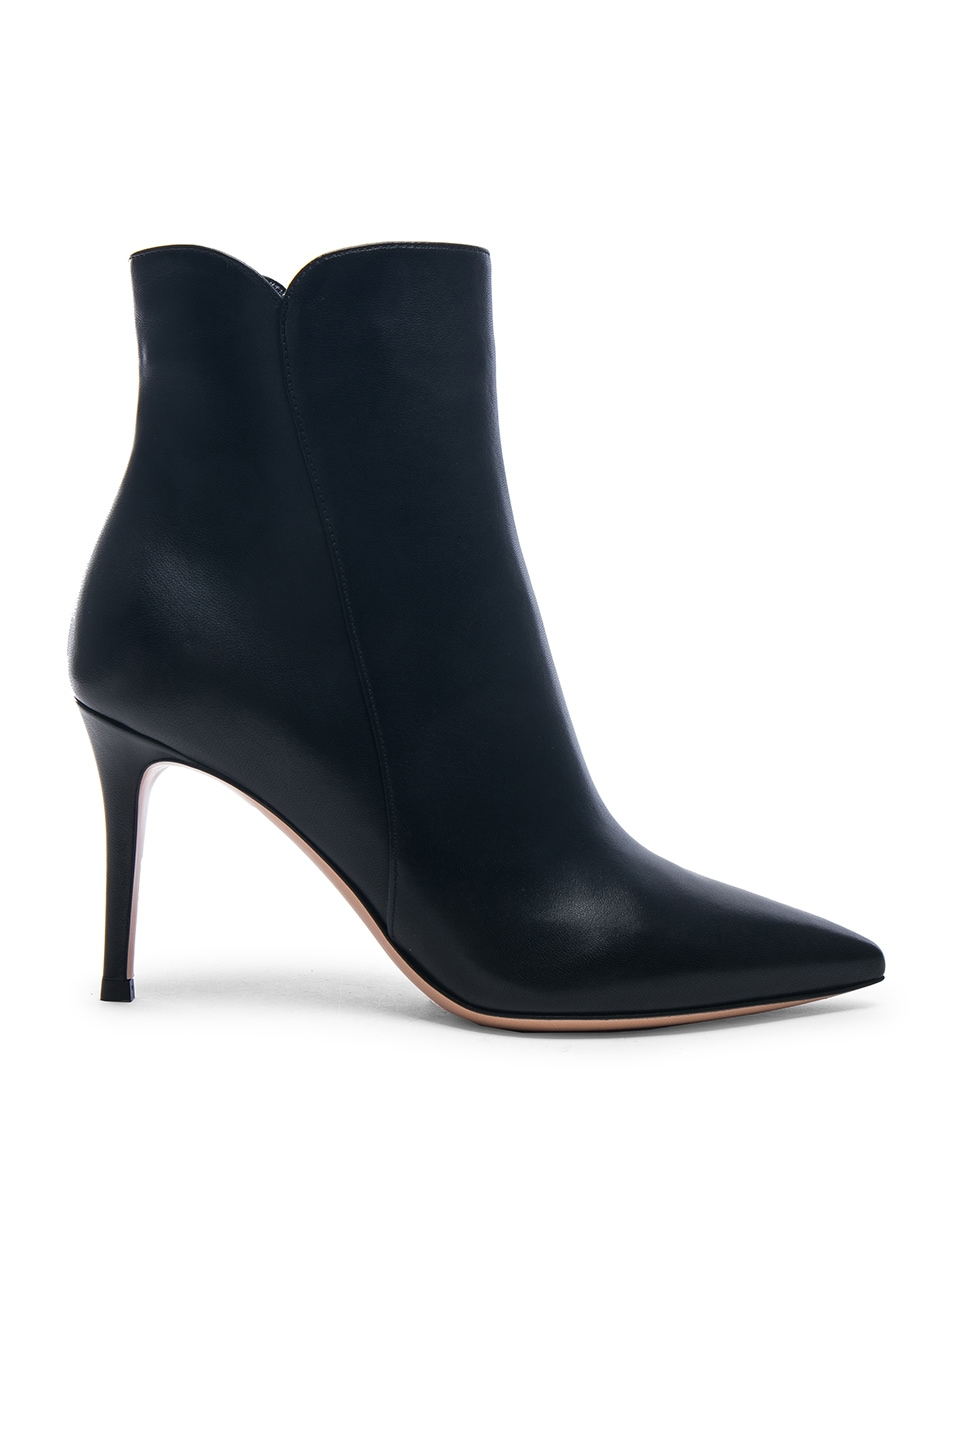 Image 1 of Gianvito Rossi Nappa Leather Levy 85 Ankle Boots in Black